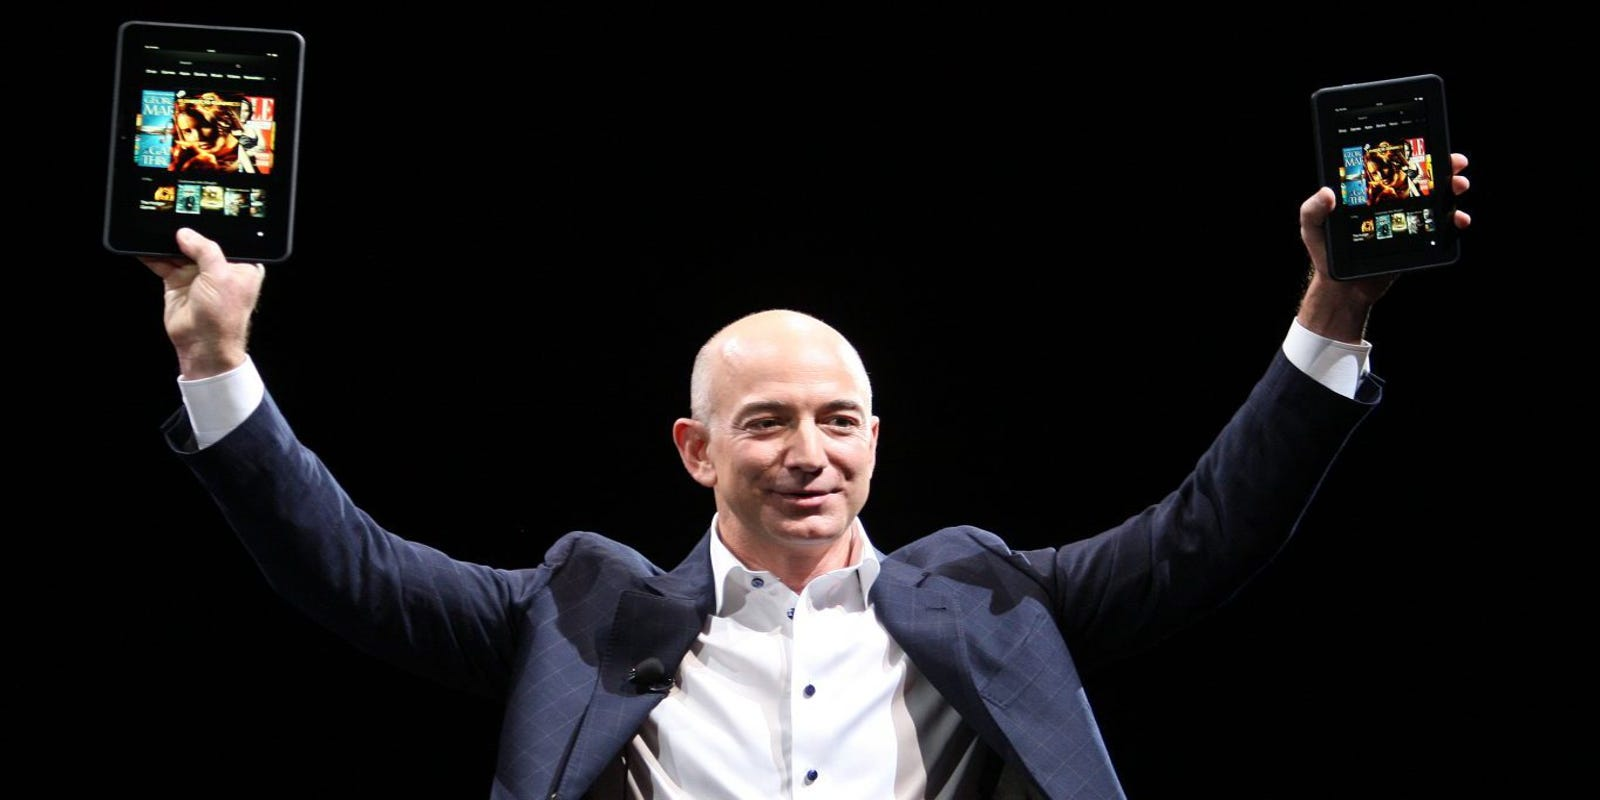 Richest person in USA 2019: The wealthiest man or woman in